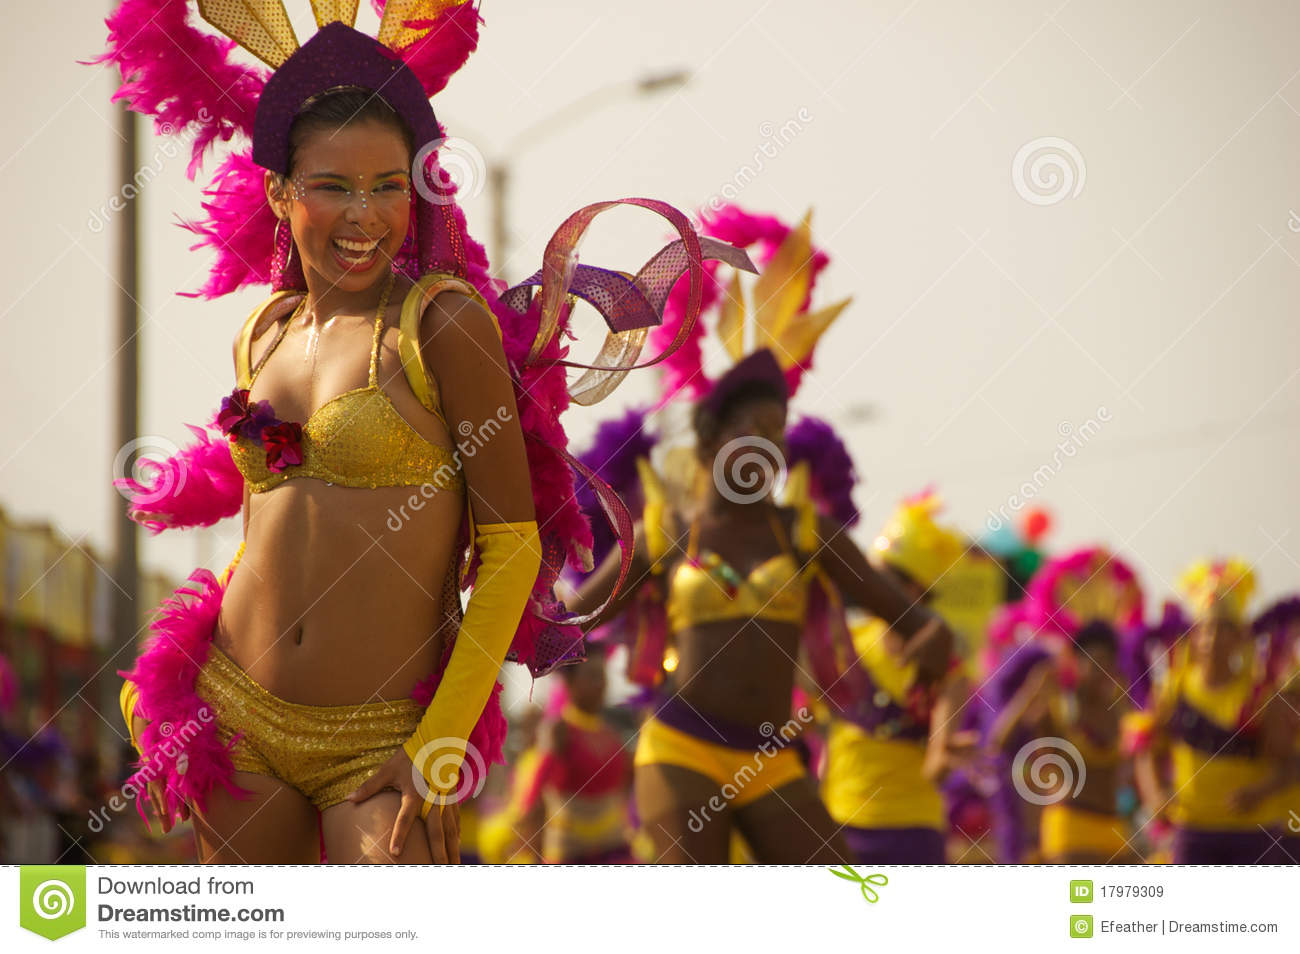 Carnival parade in Barranquilla, Colombia